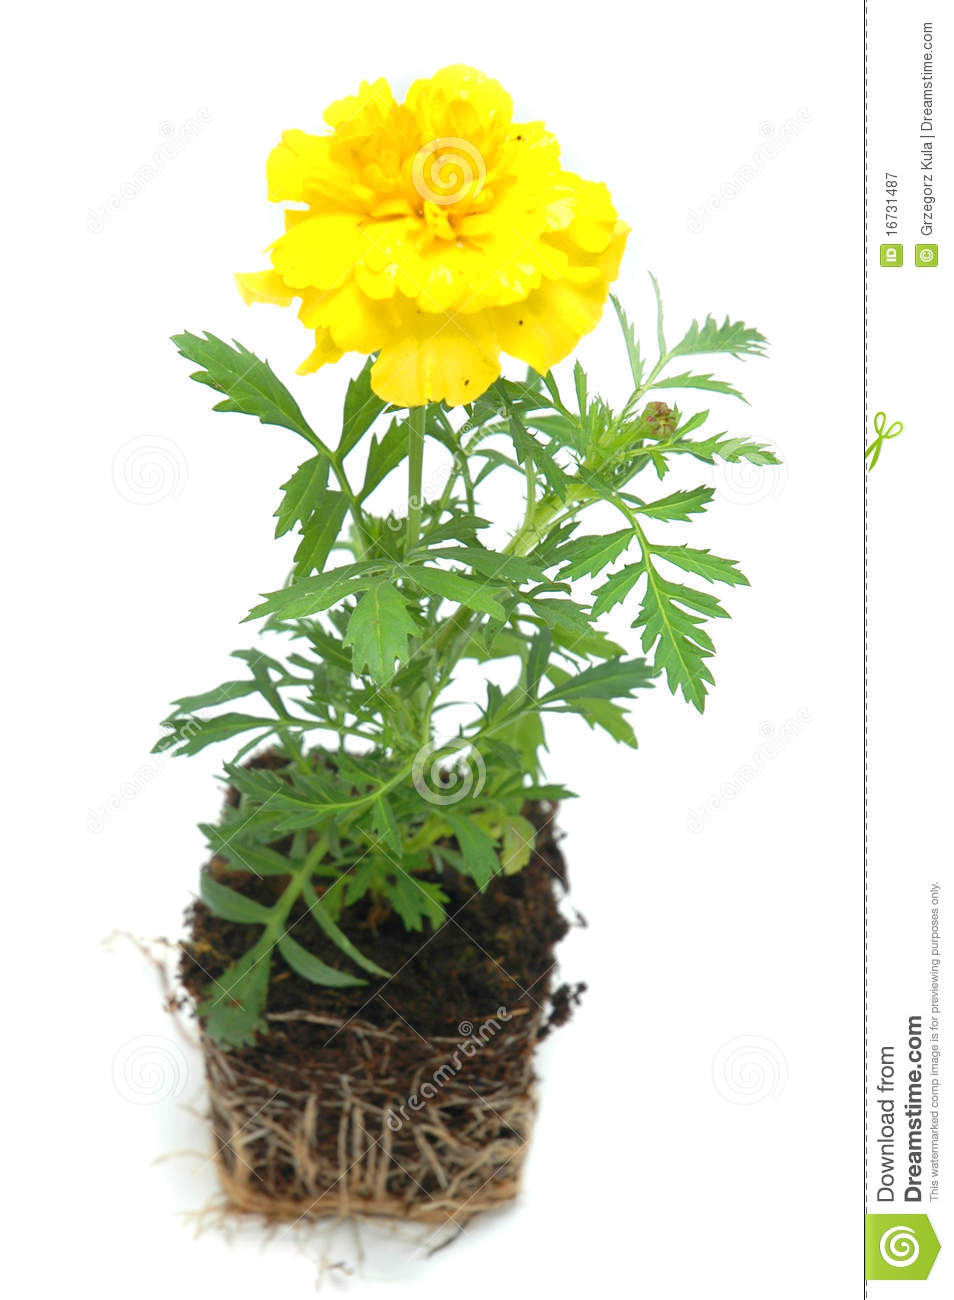 Flower stock image. Image of yellow, green, marigold ... Marigold Plant With Roots